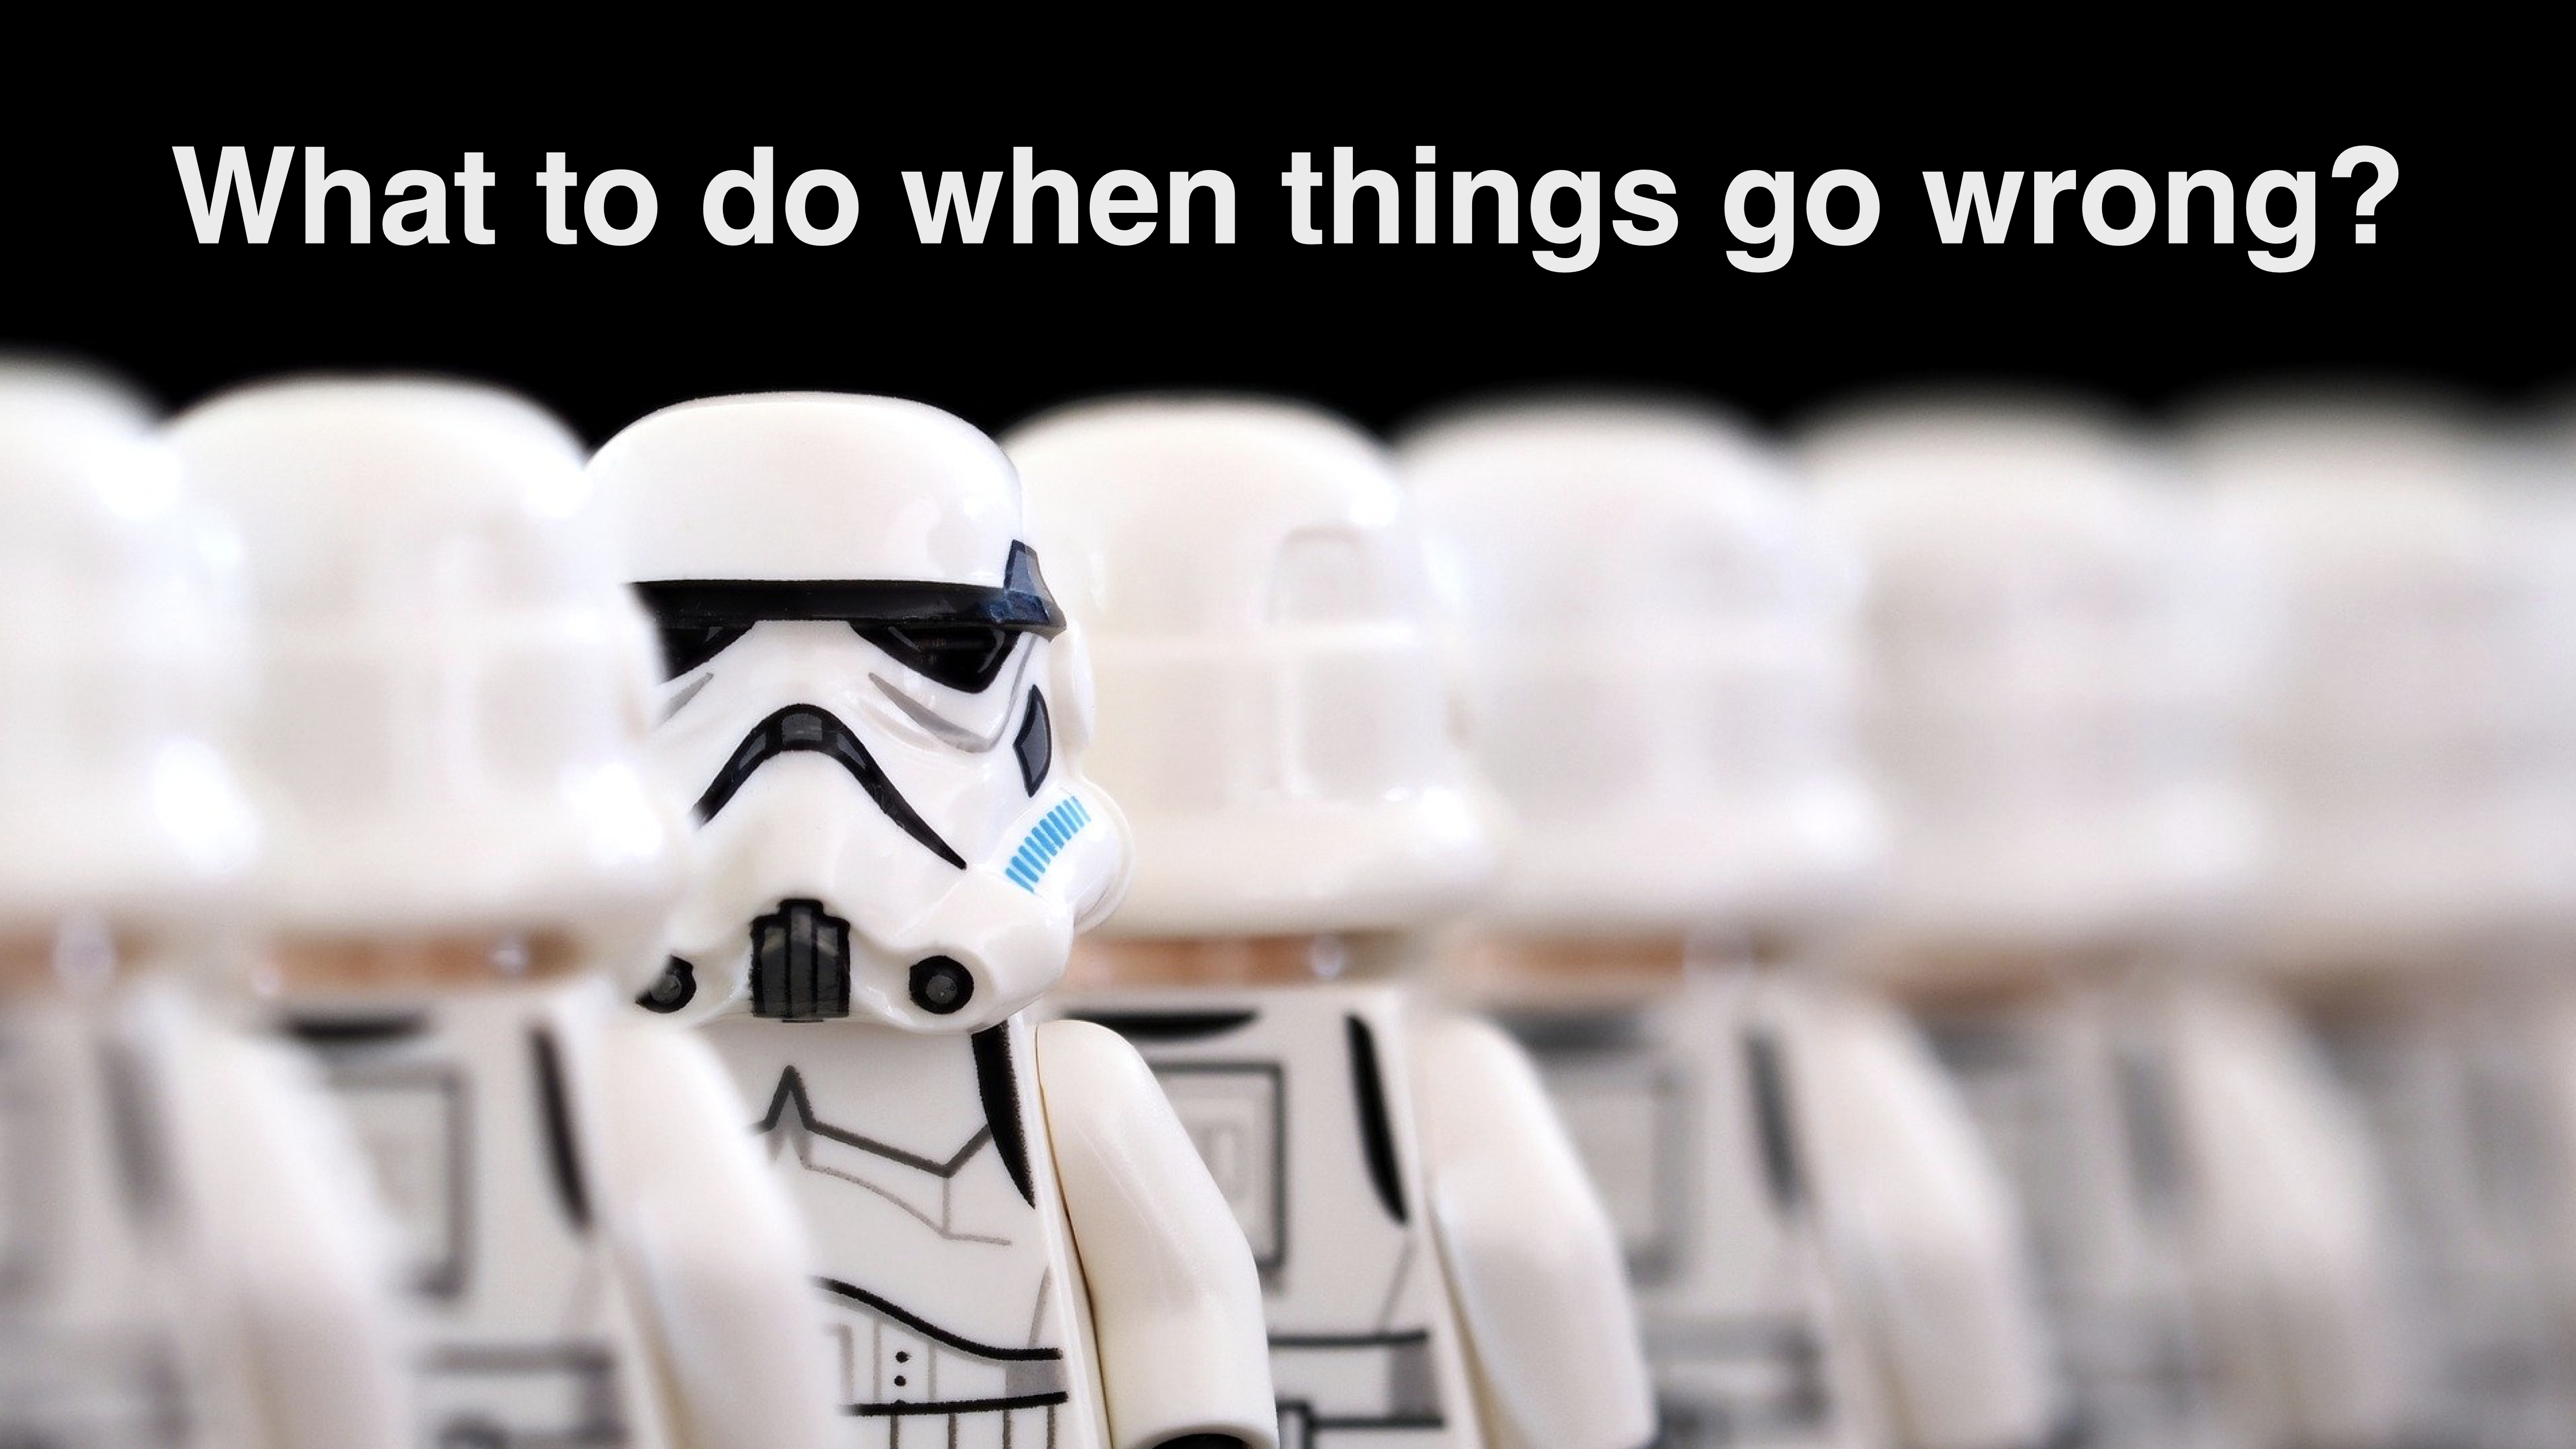 What to do when things go wrong